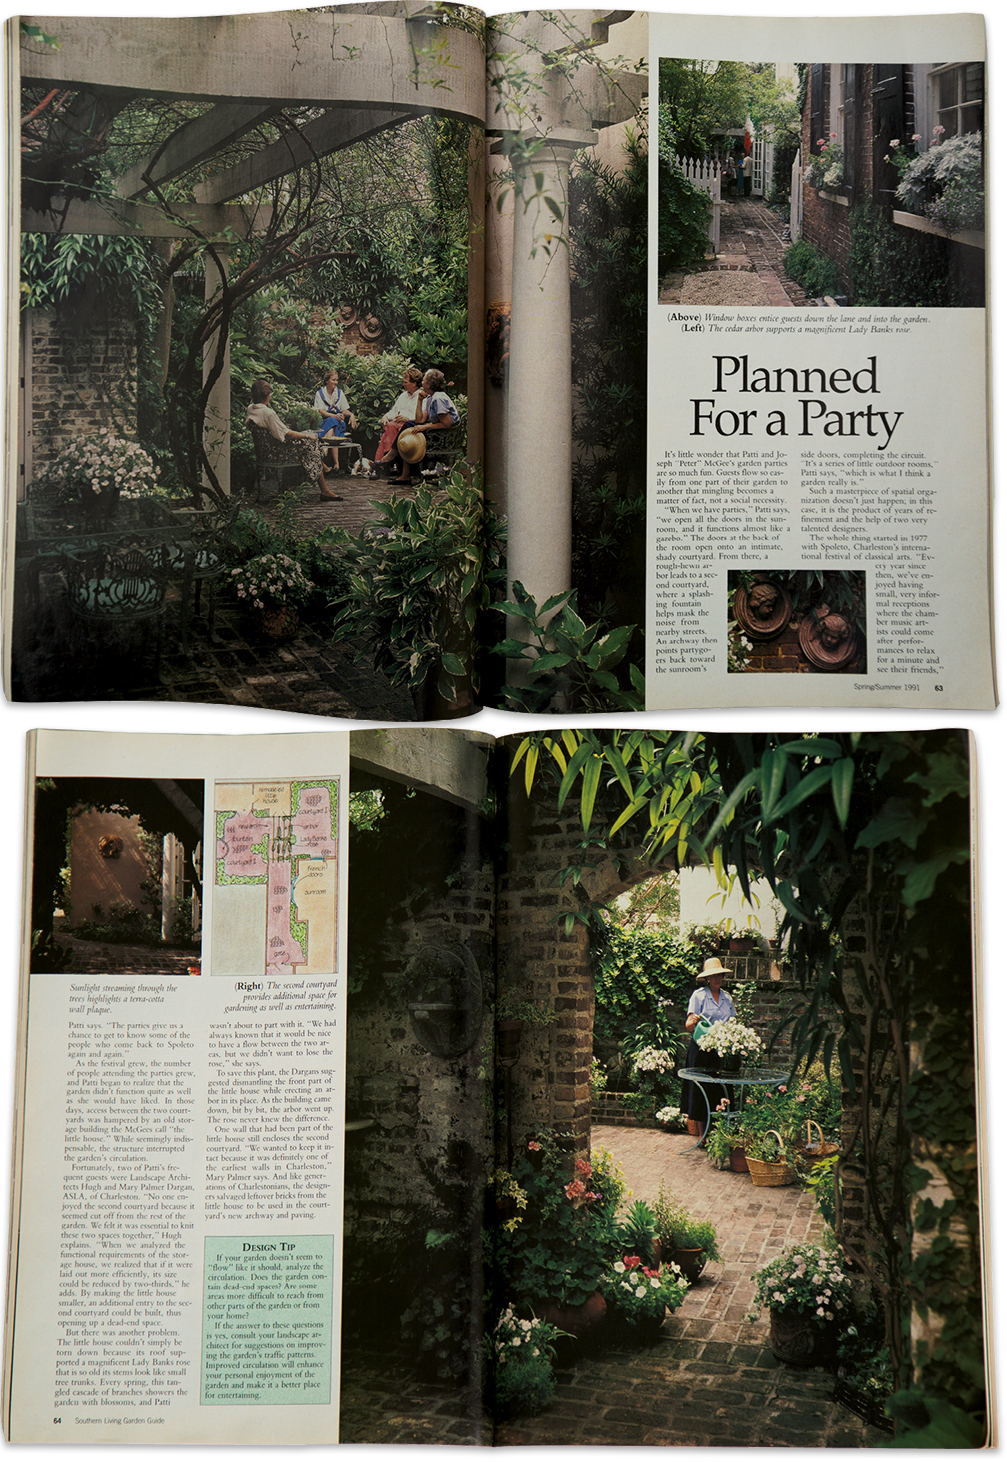 IN THE SPOTLIGHT: The McGees' courtyard garden on Church Street as featured in Southern Living's Spring/Summer 1991 Garden Guide